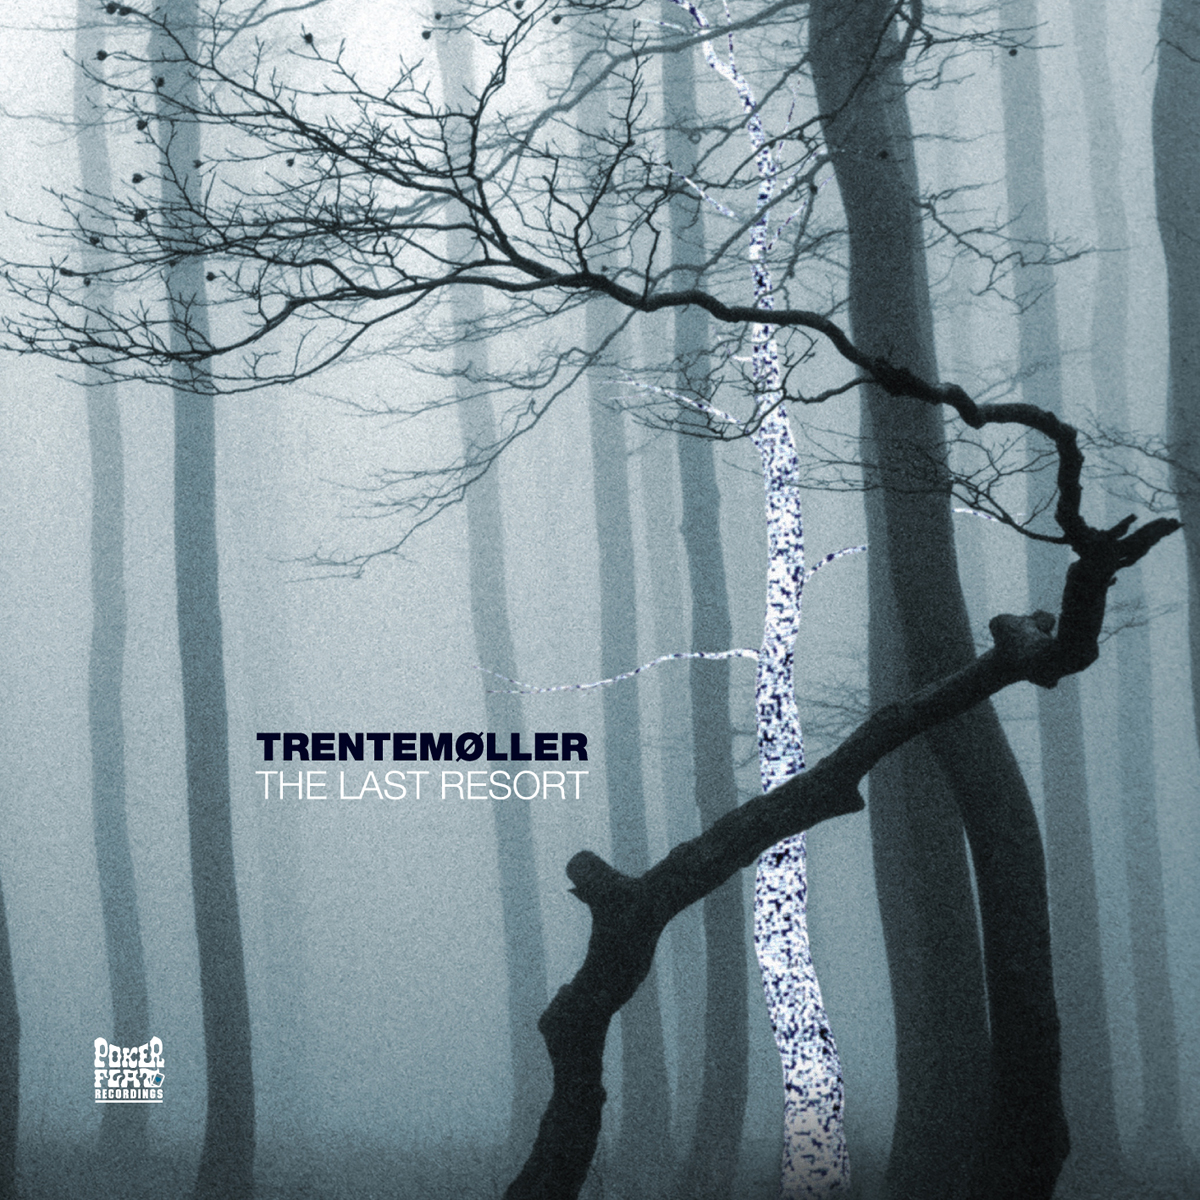 TRENTEMØLLER - THE LAST RESORT (POKER FLAT RECORDS, 2006)